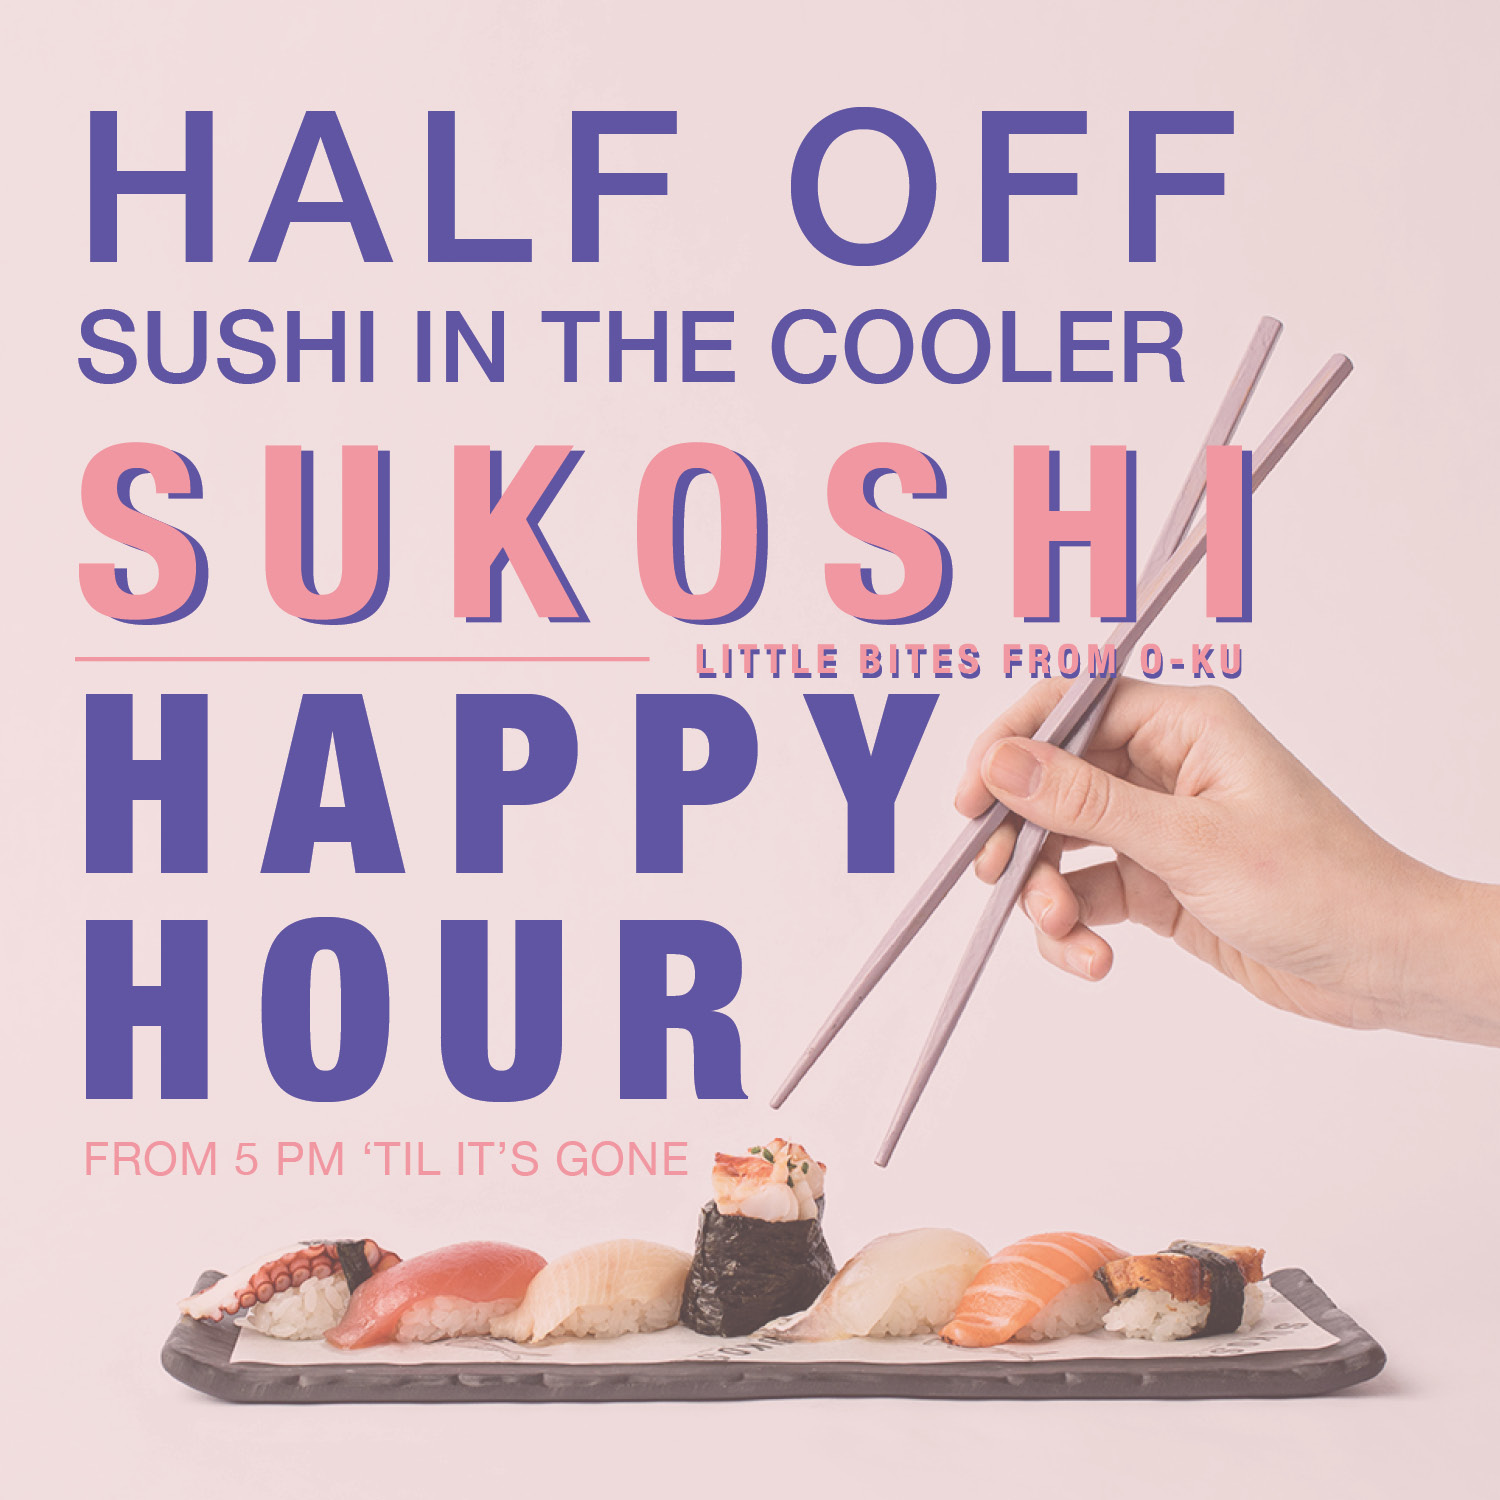 0818-ir suk- sushi happy hour graphics5.jpg